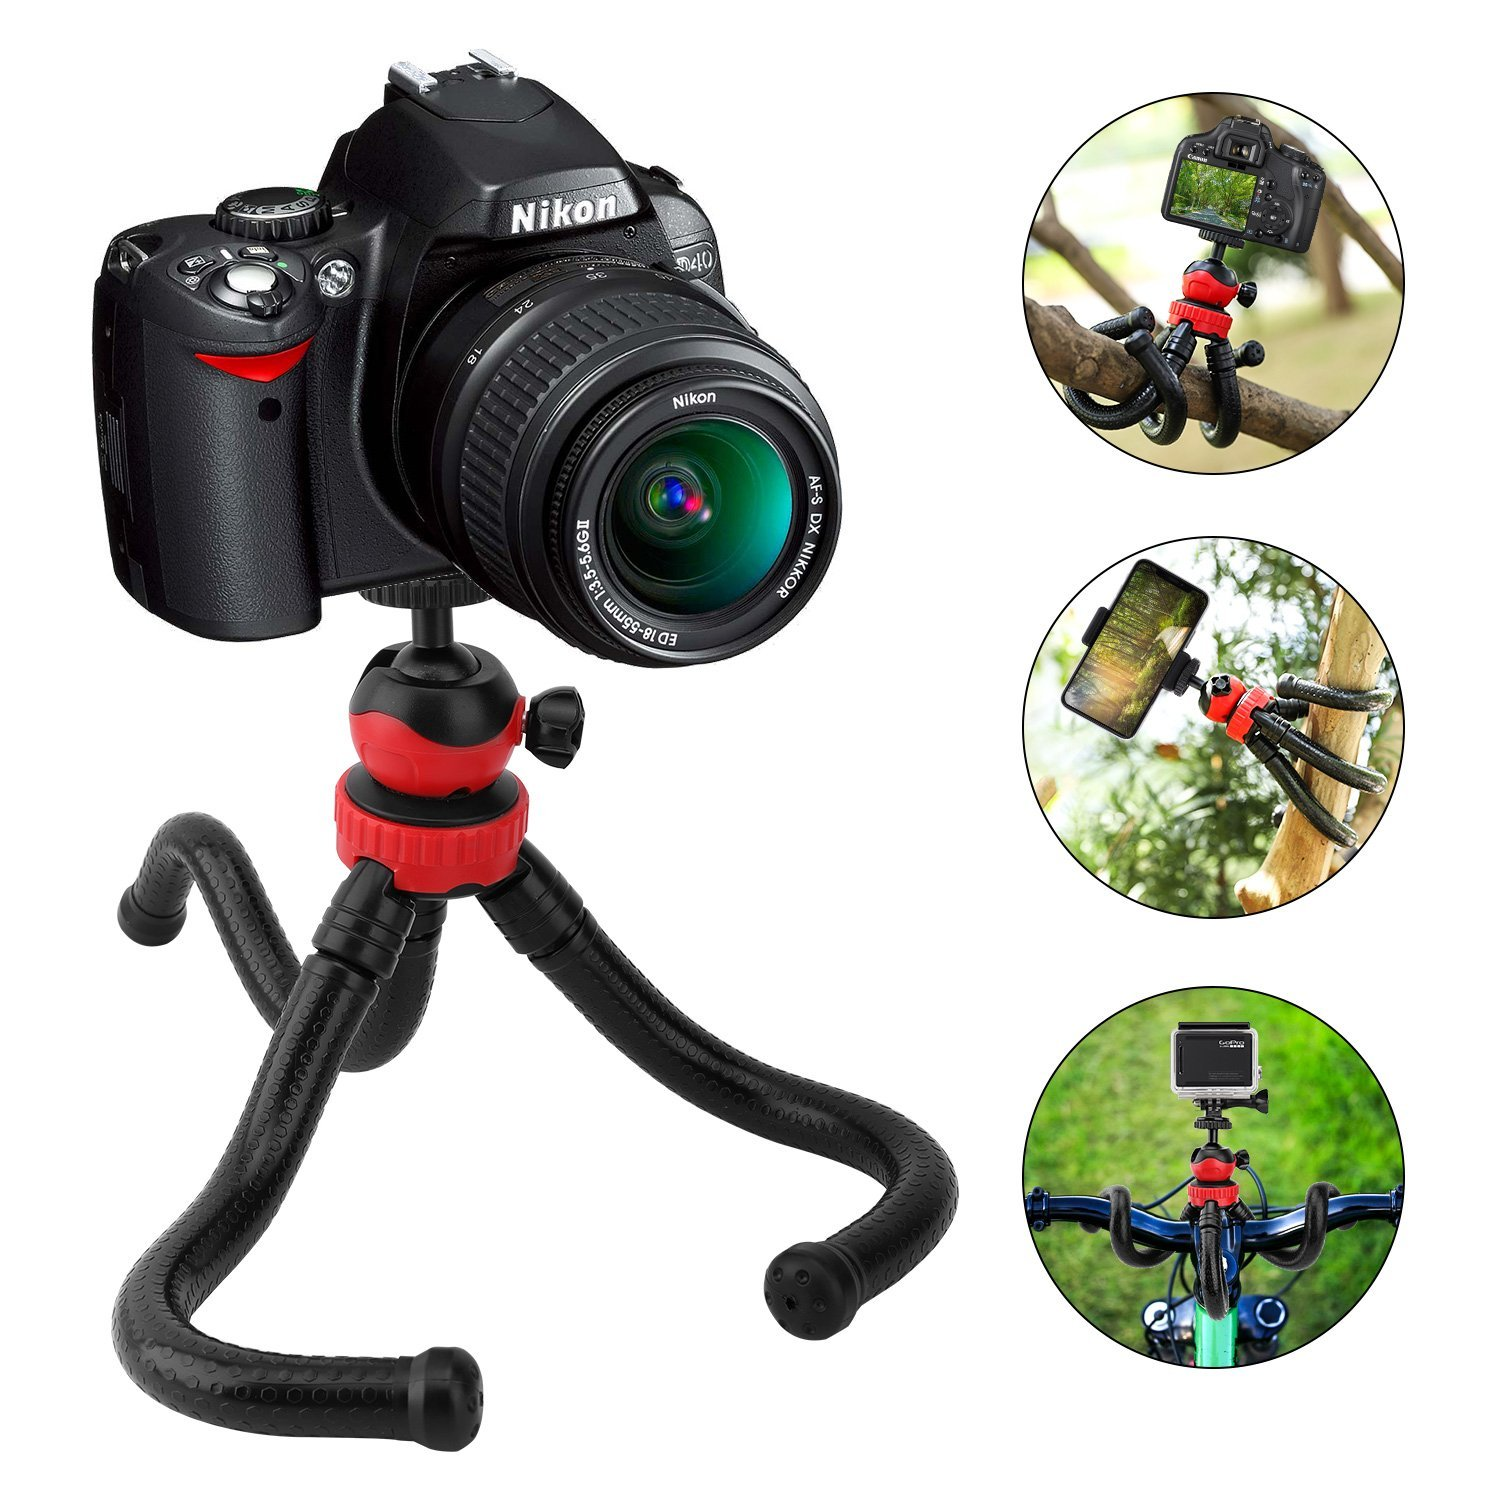 MoKo Camera Phone Tripod, Octopus Flexible Travel Stand with Remote Control, Gopro Adapter and Phone Holder for Apple iPhone X/8 Plus/8, Samsung Galaxy S9 Plus/S9/Note, Gopro and More - Black